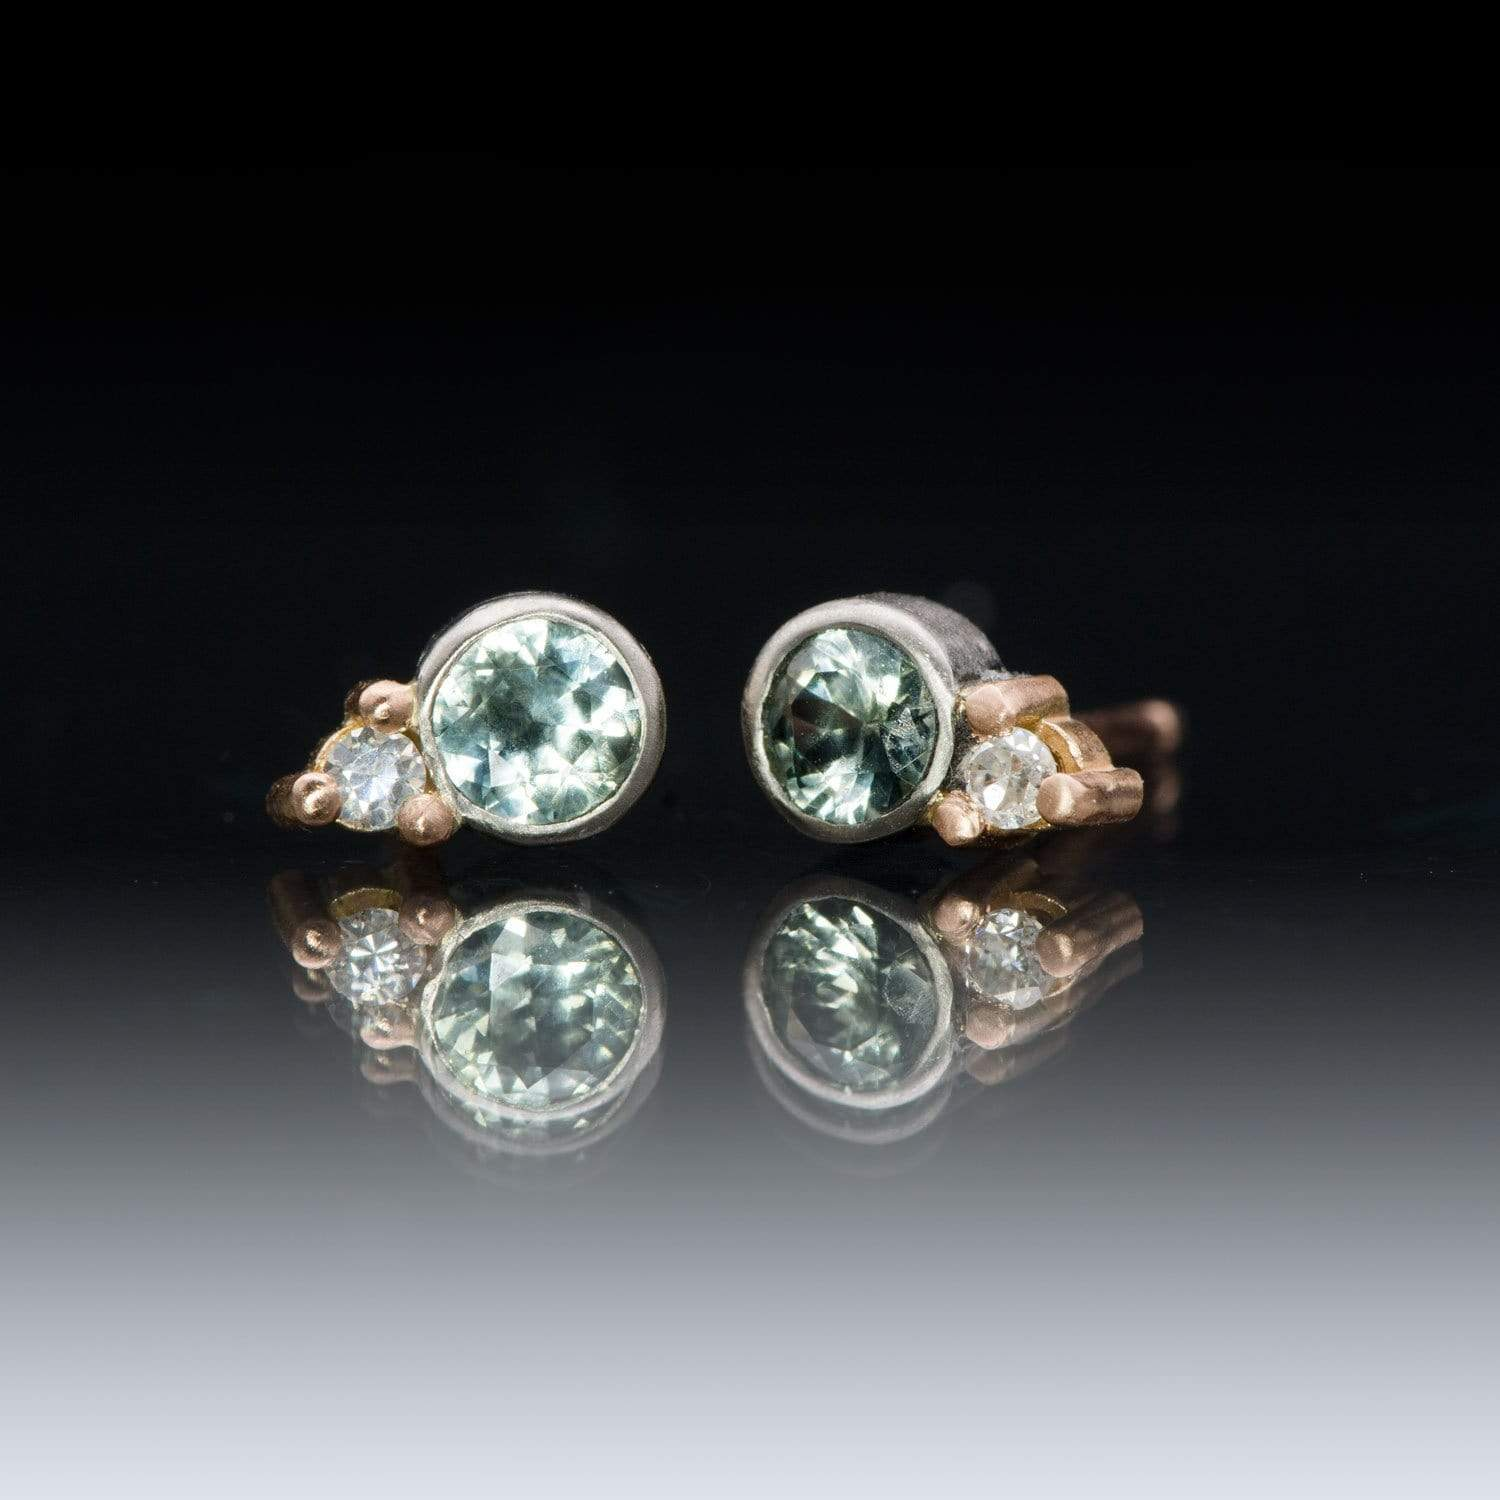 Fair Trade Green-blue Montana Sapphire Mixed Metal Bezel Stud Earrings With Moissanite Accents, Ready to Ship